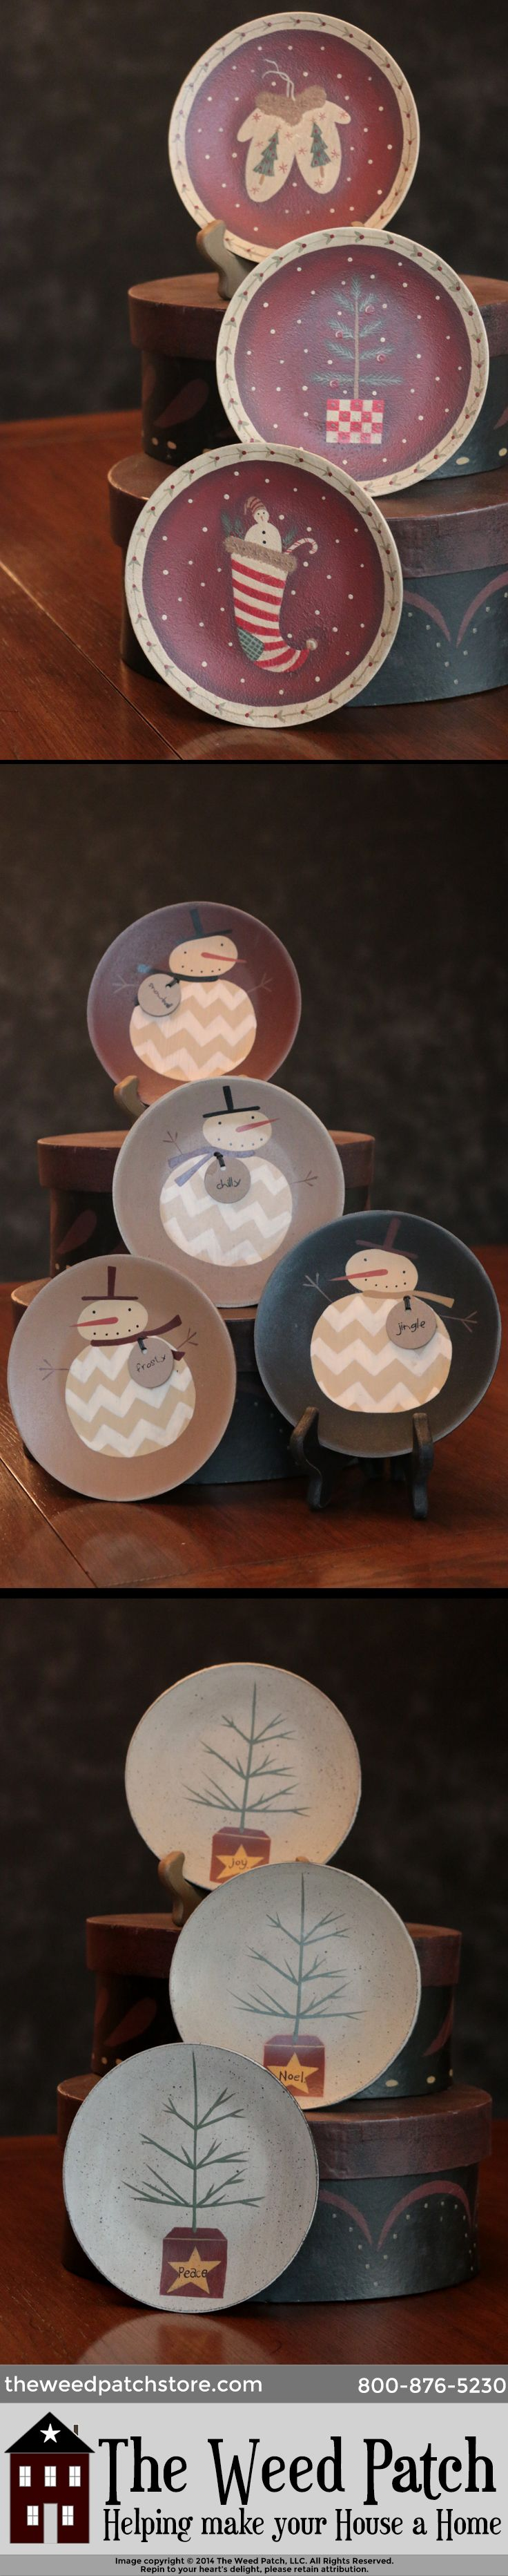 Primitive Christmas Plates by The Hearthside Collection feature everything from feather trees to snowman / snowmen, stockings, candy canes, santas, and more. - The Weed Patch - http://www.theweedpatchstore.com/christmas-country-primitive-christmas/